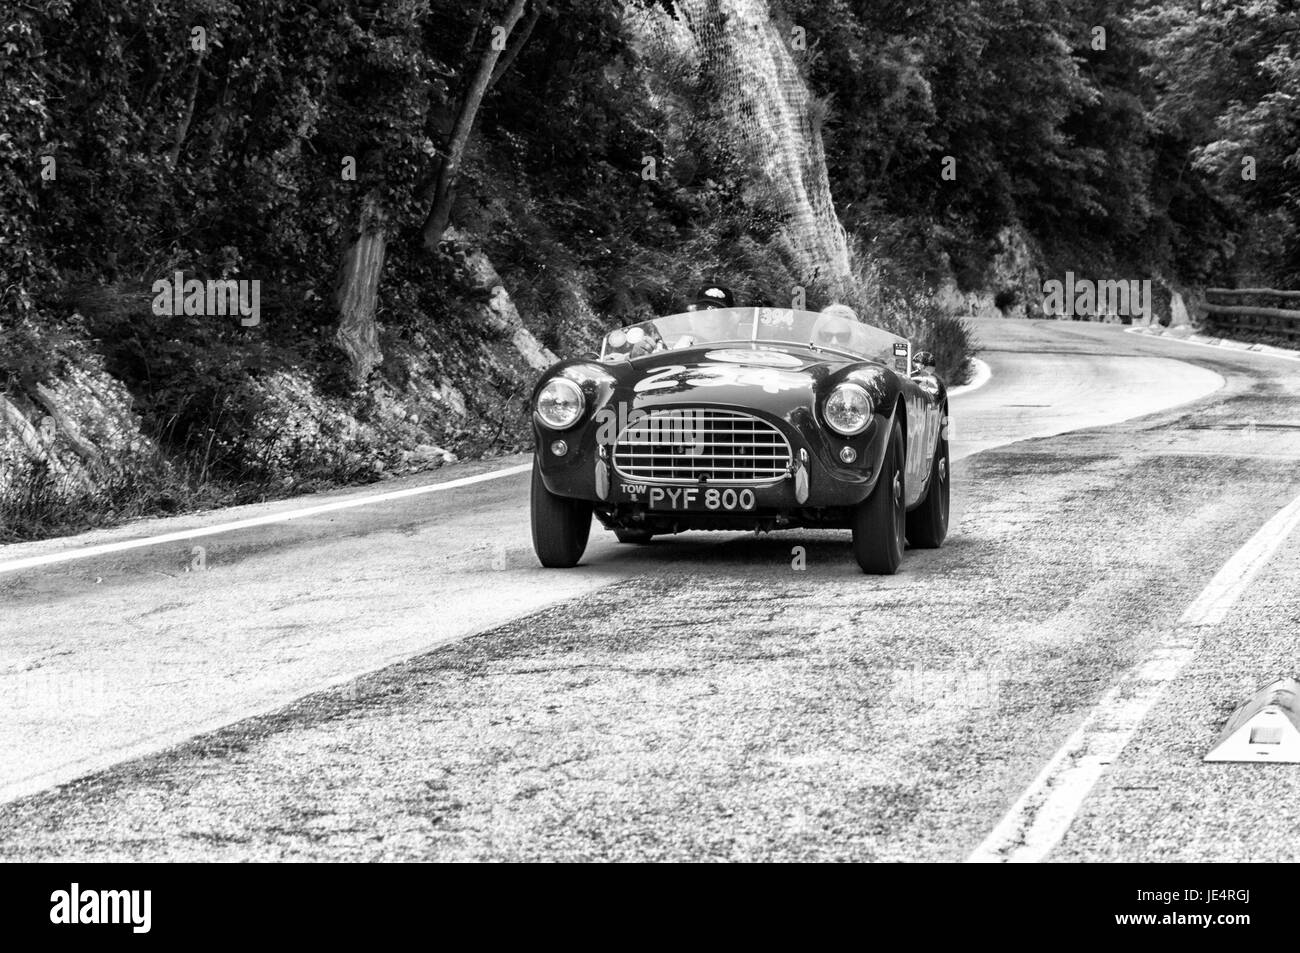 GOLA DEL FURLO, ITALY - MAY 19: A.C. ACE 1955 on an old racing car in rally Mille Miglia 2017 the famous italian - Stock Image